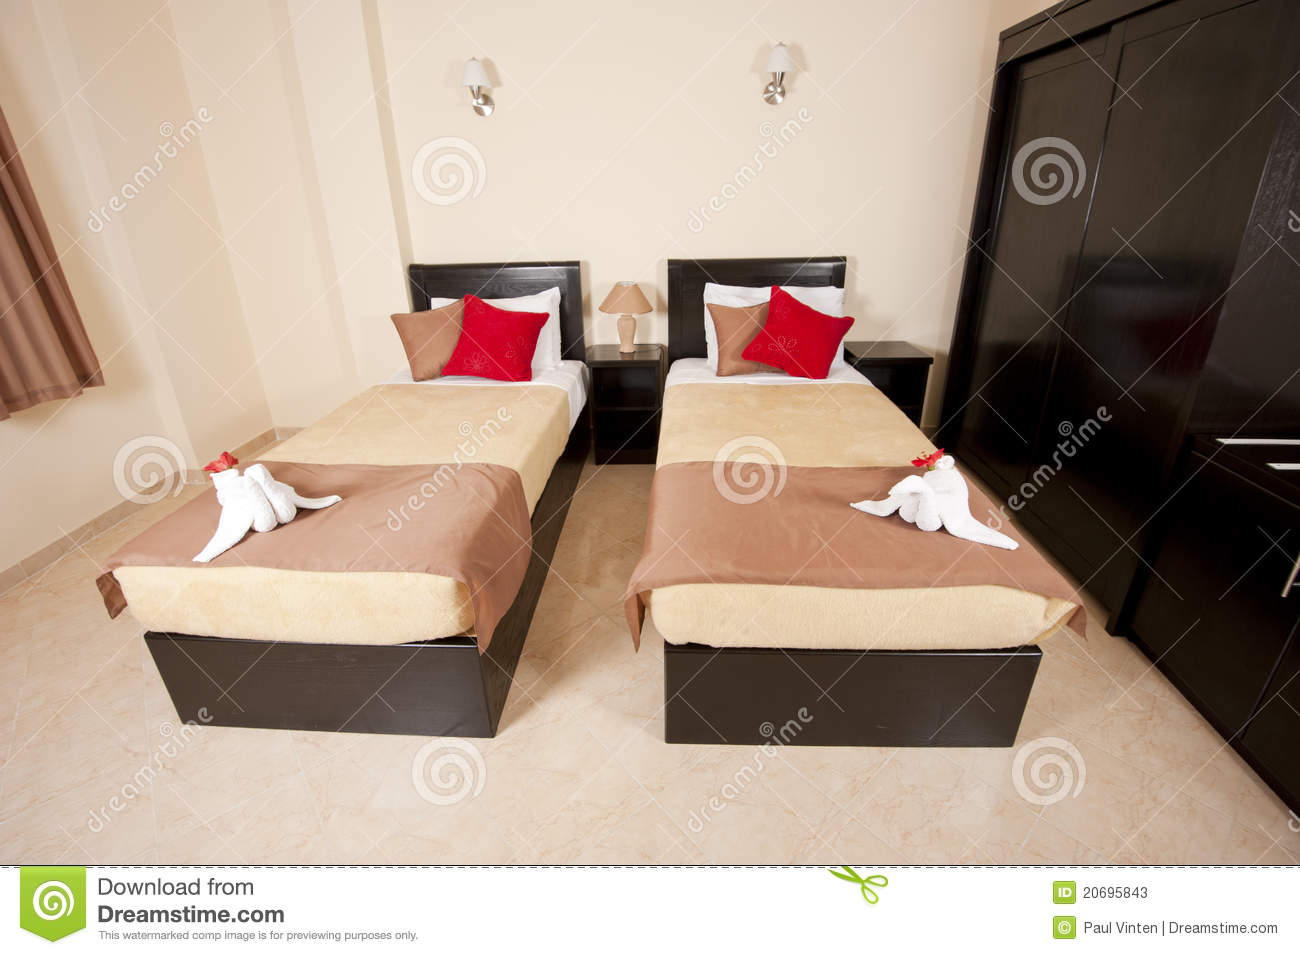 Twin Beds In A Bedroom Stock Photos - Image: 20695843